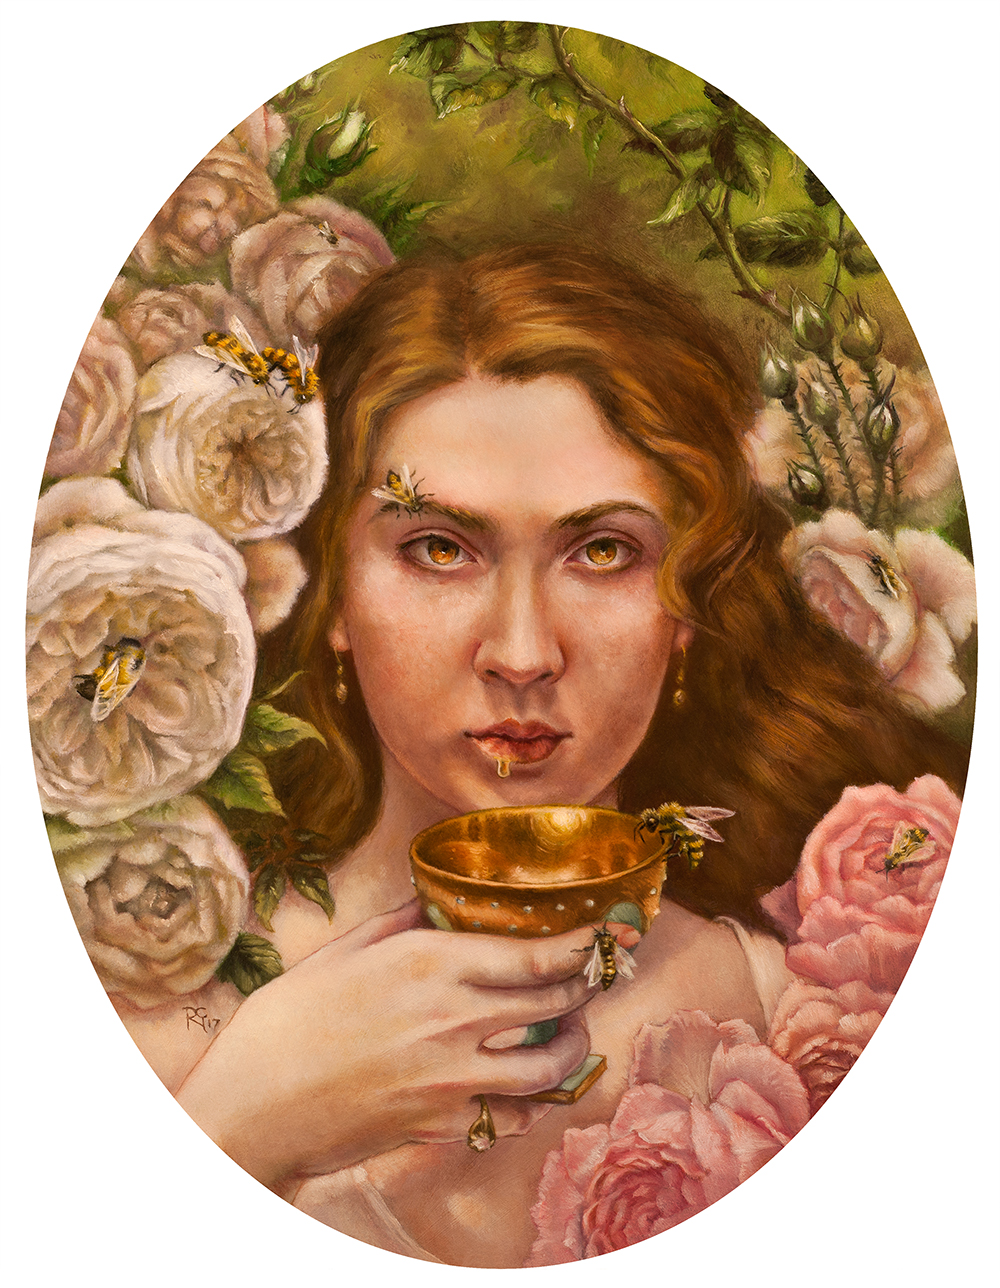 """She on Honey-Dew Hath Fed"" by Paige Carpenter"